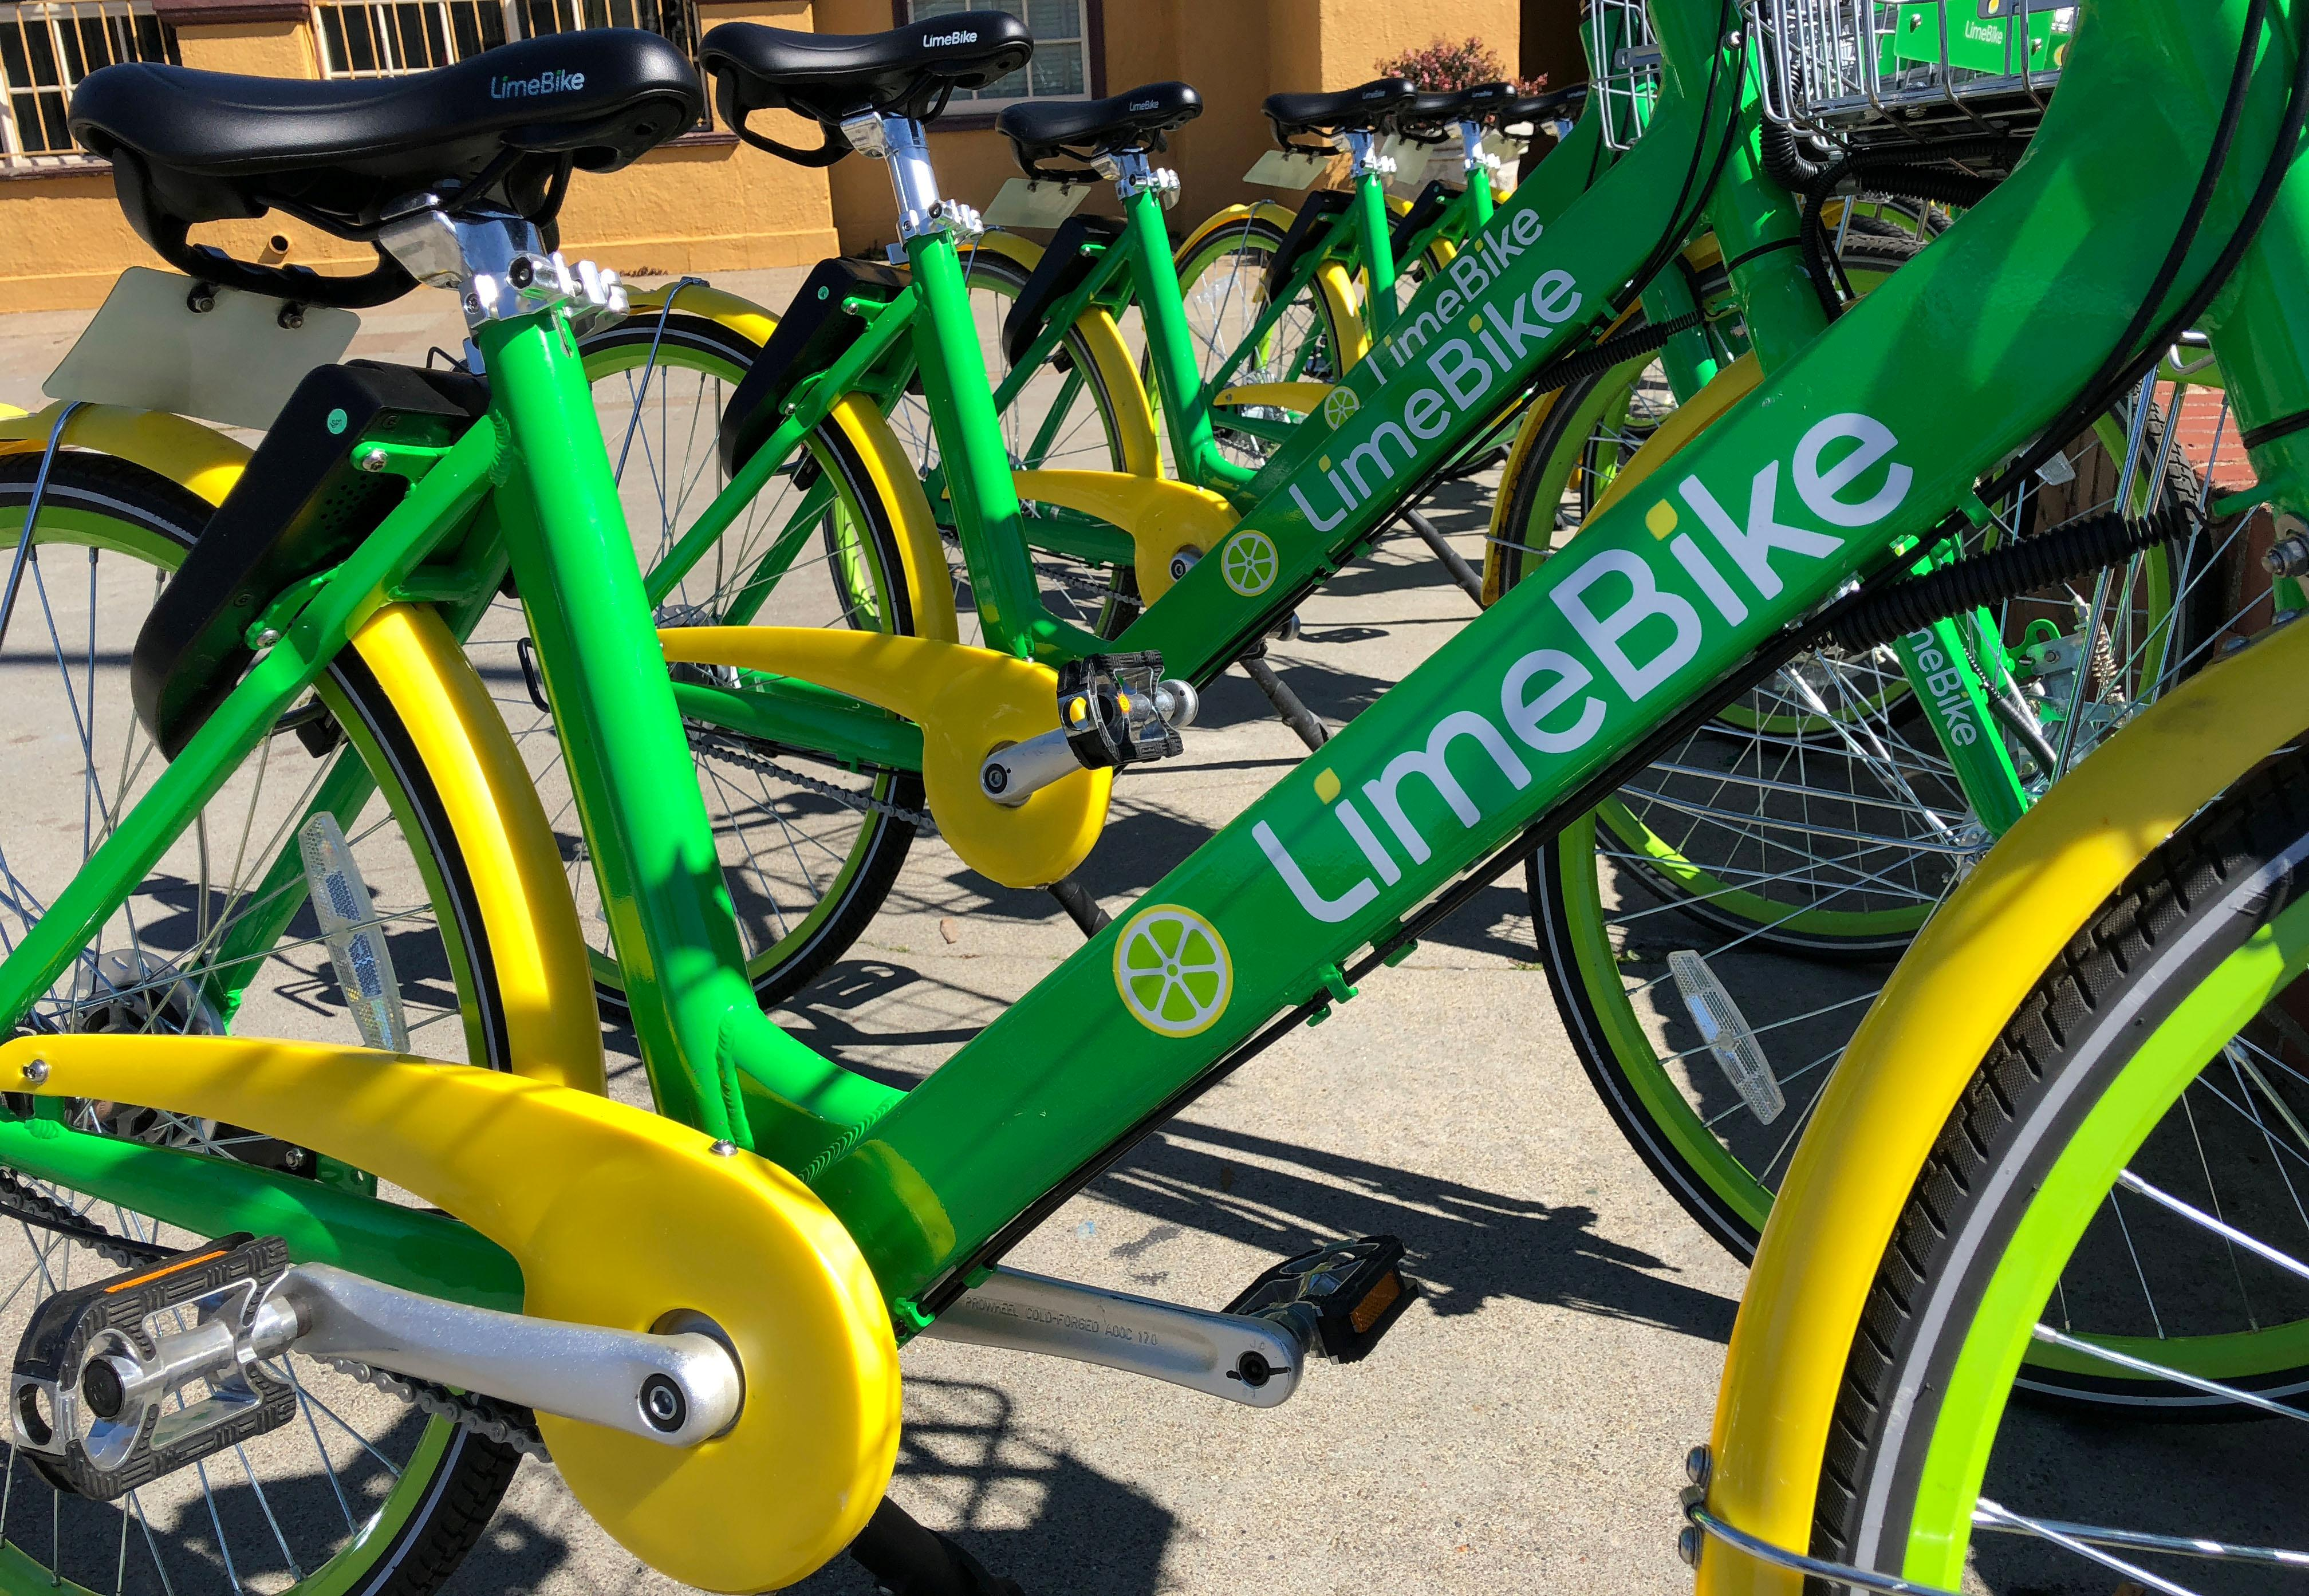 Bike-sharing companies face an uphill ride in U S  - Reuters